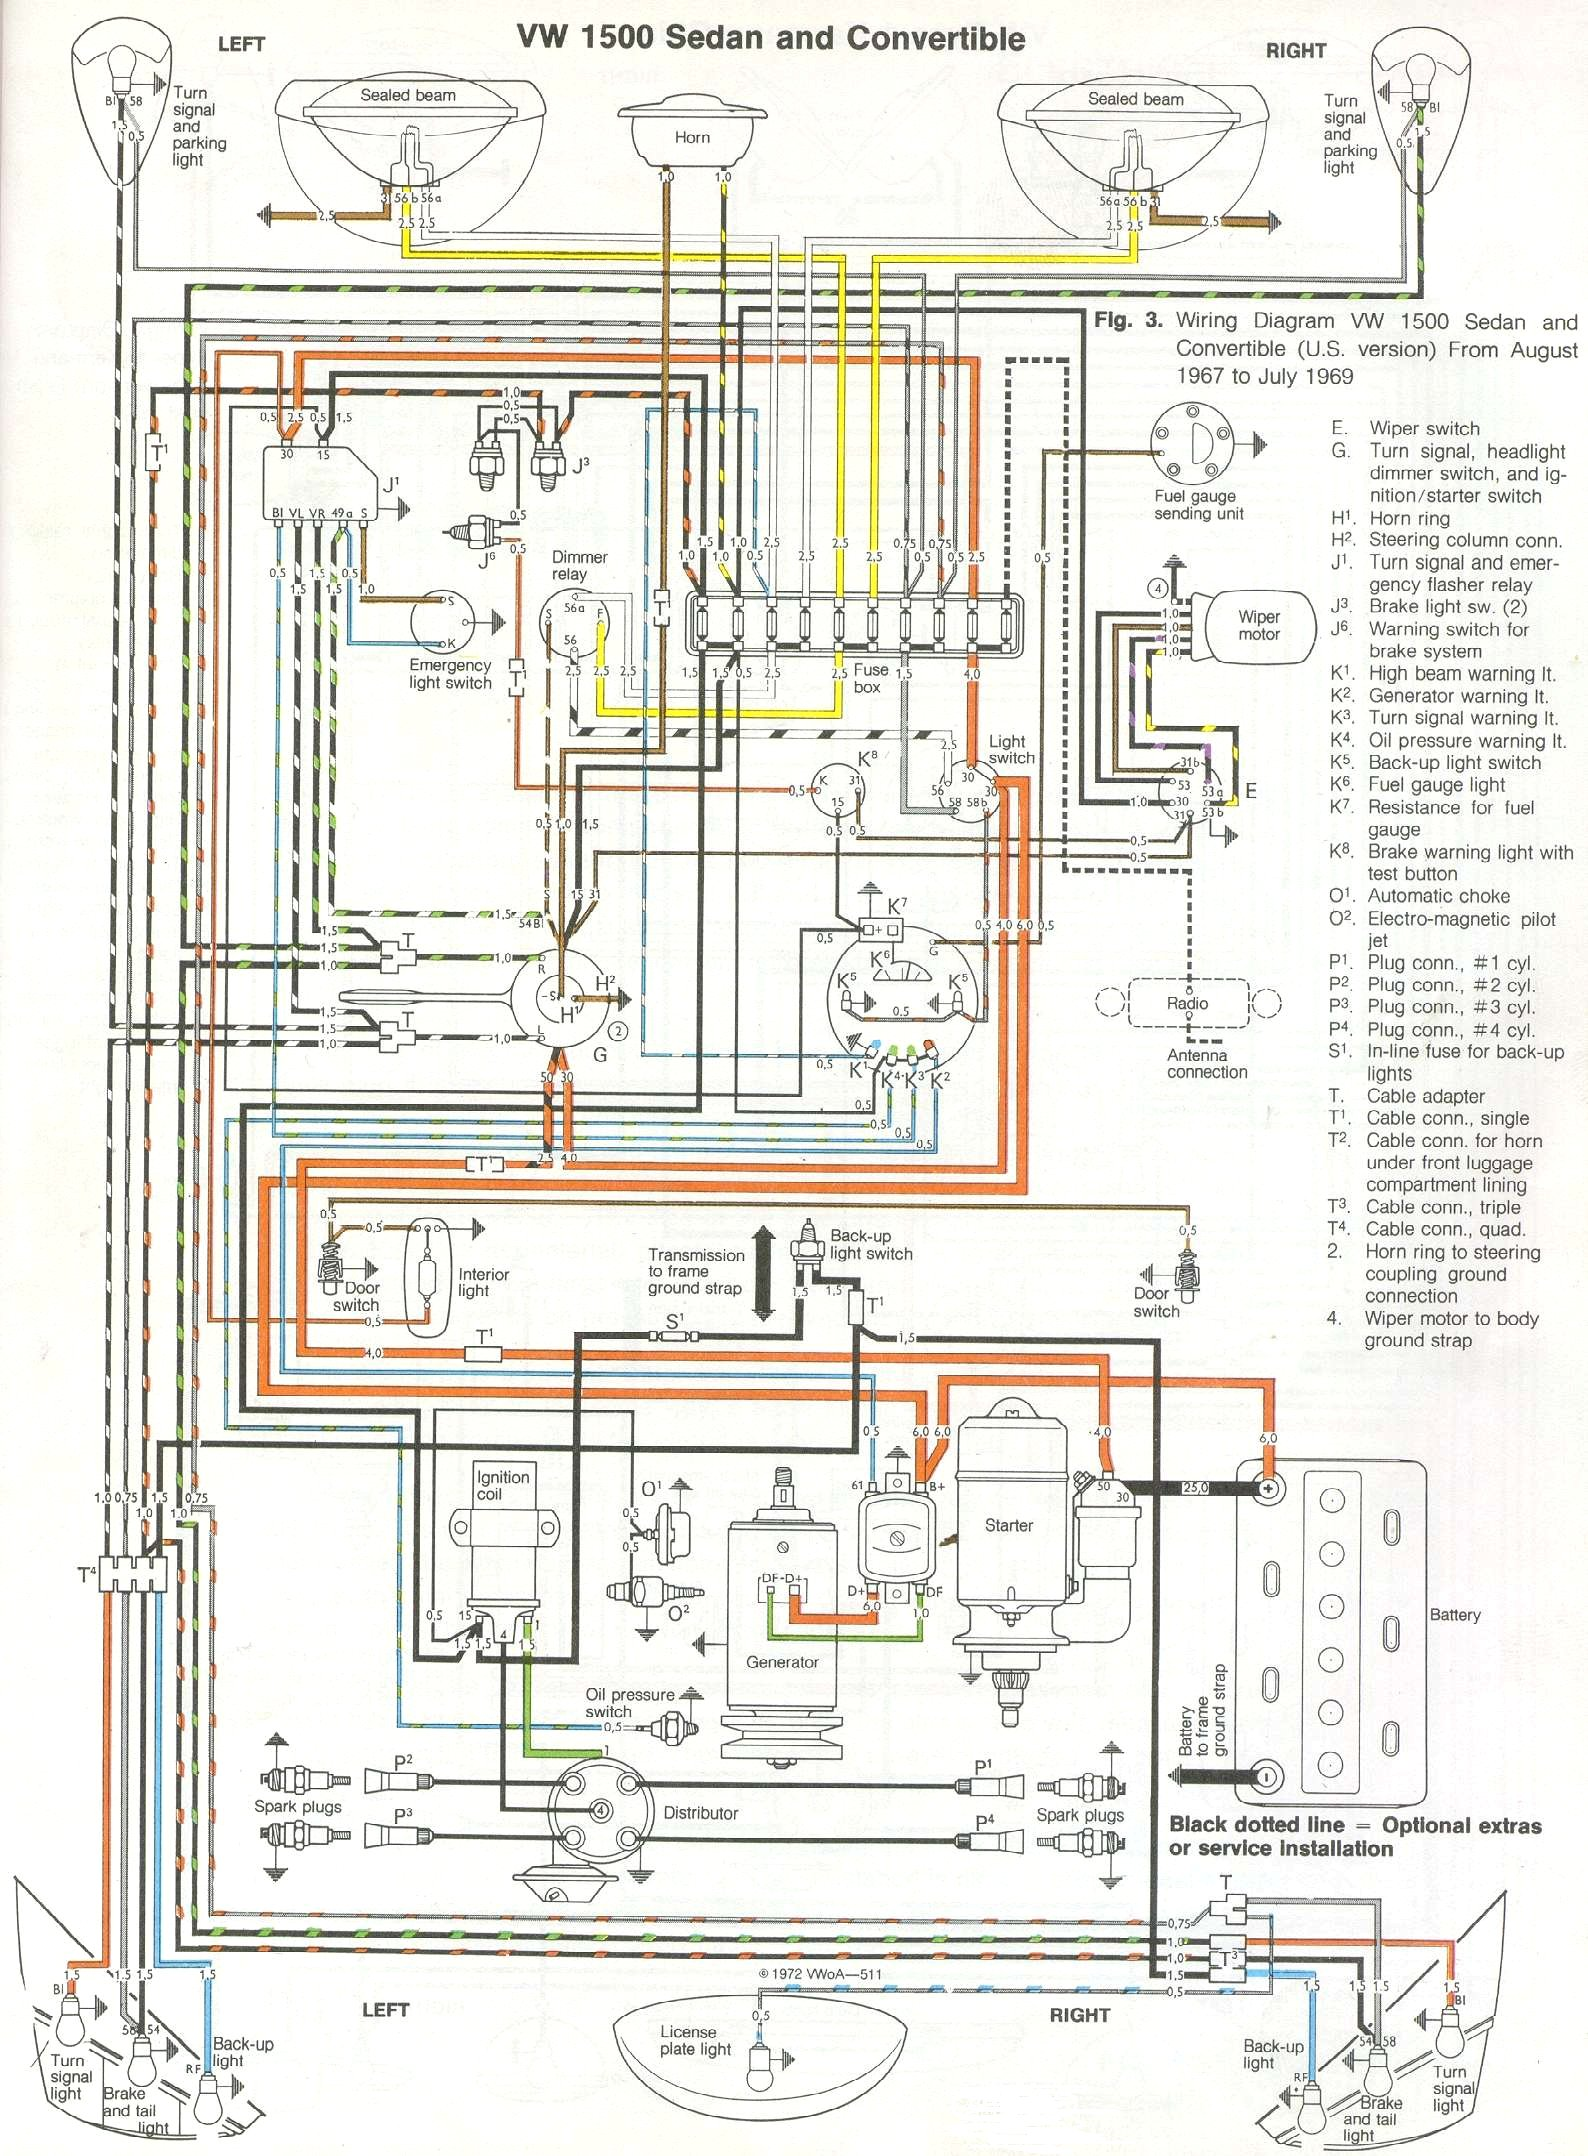 bug_6869 1969 71 beetle wiring diagram thegoldenbug com 73 VW Beetle Wiring Diagram at soozxer.org